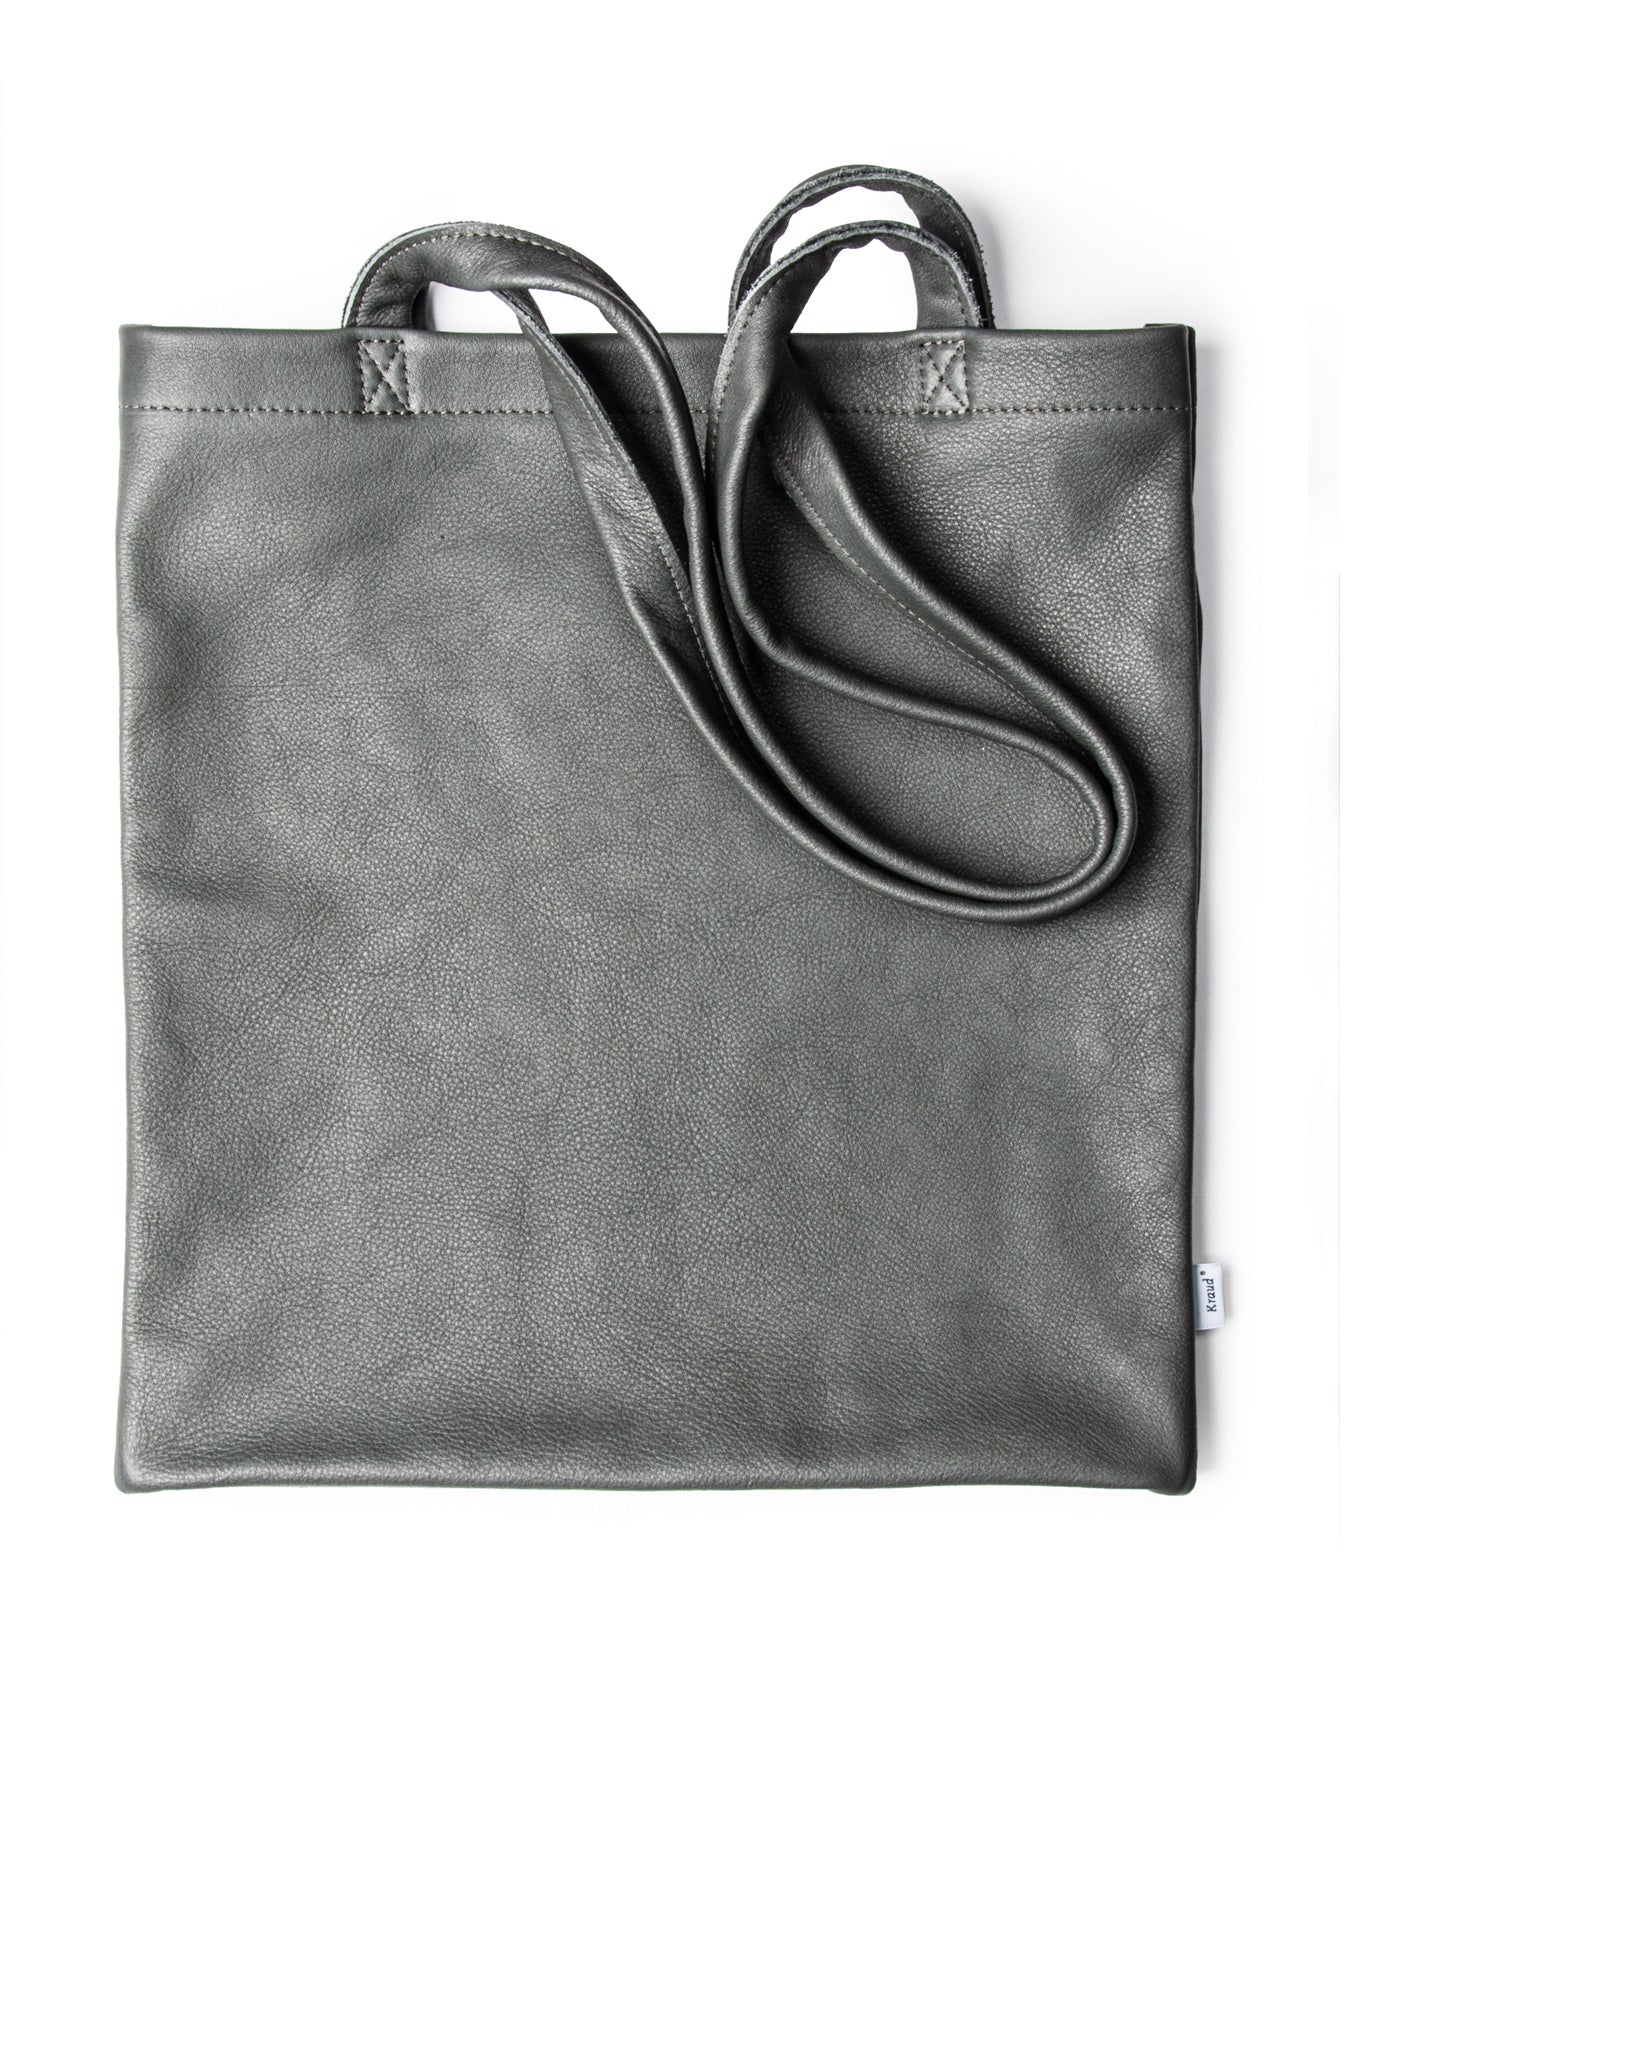 Kraud Leather fabricbag